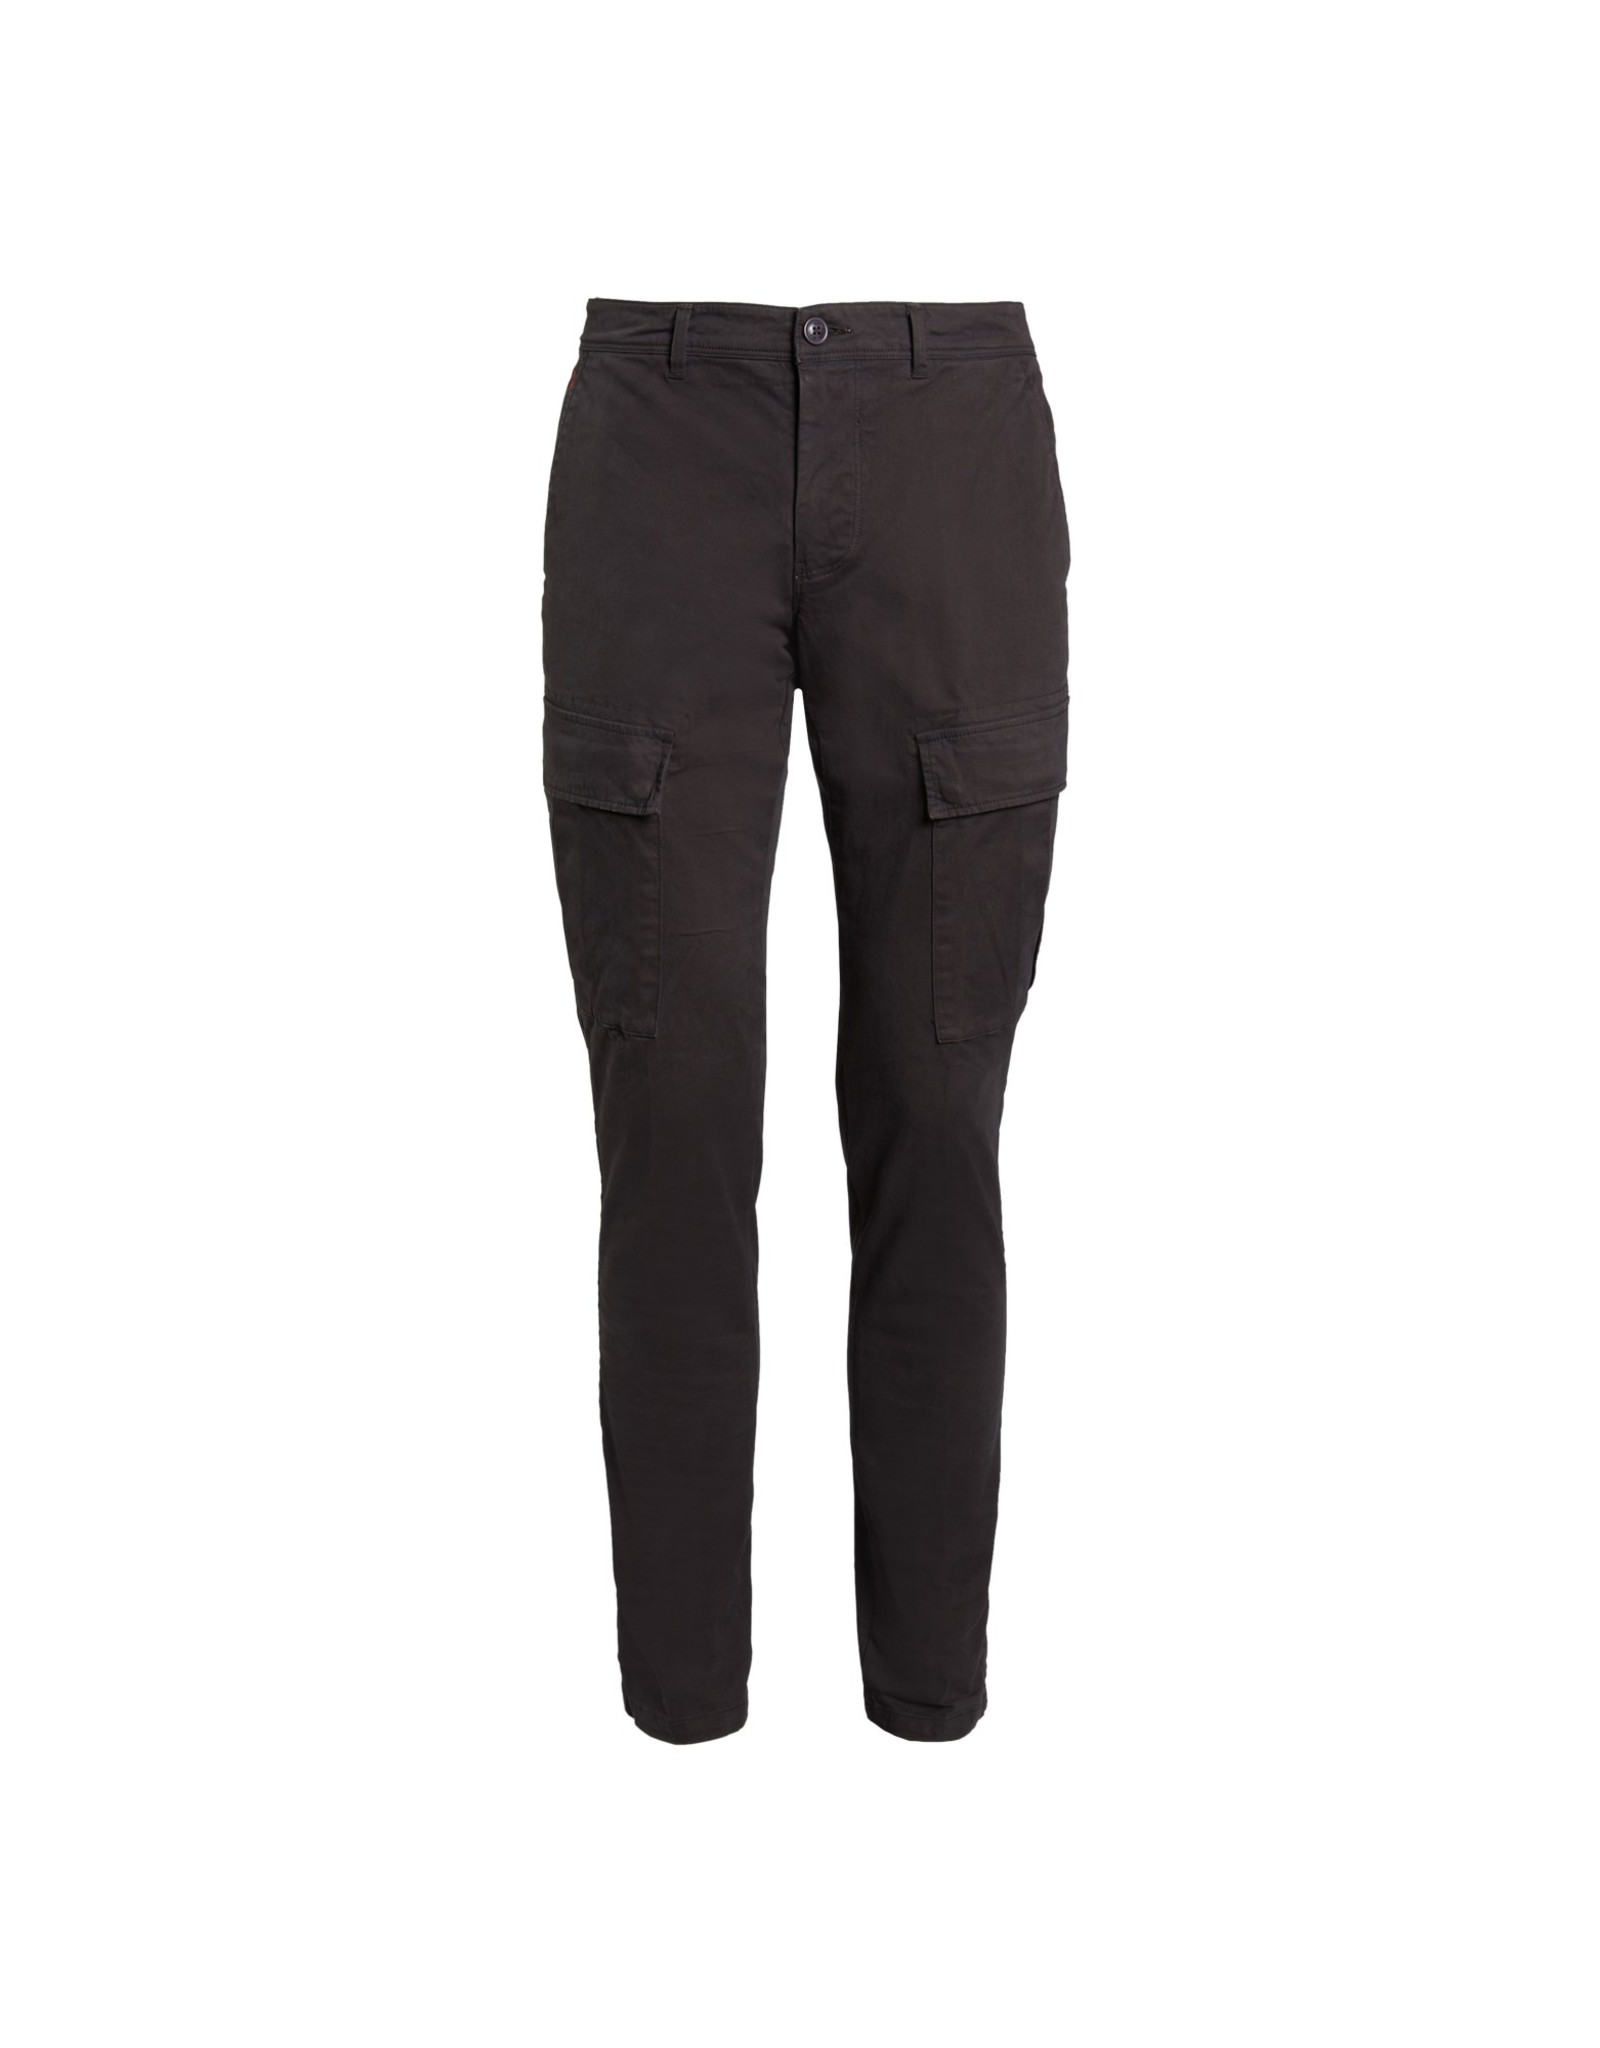 Slam Trousers B70 - Anthracite ( 171 )